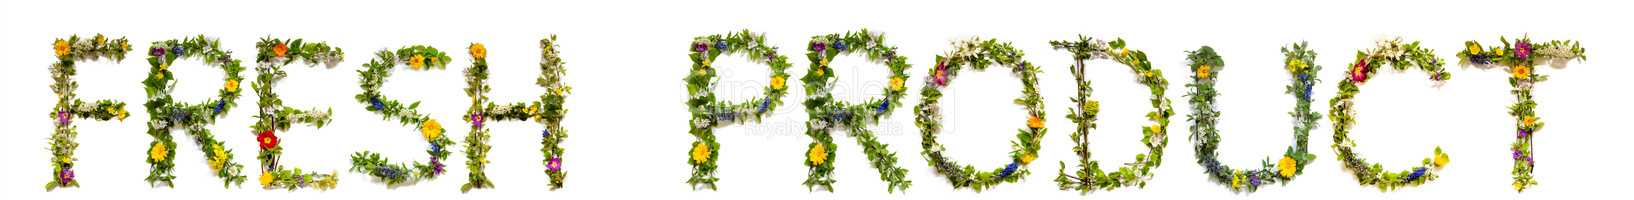 Flower And Blossom Letter Building Word Fresh Product